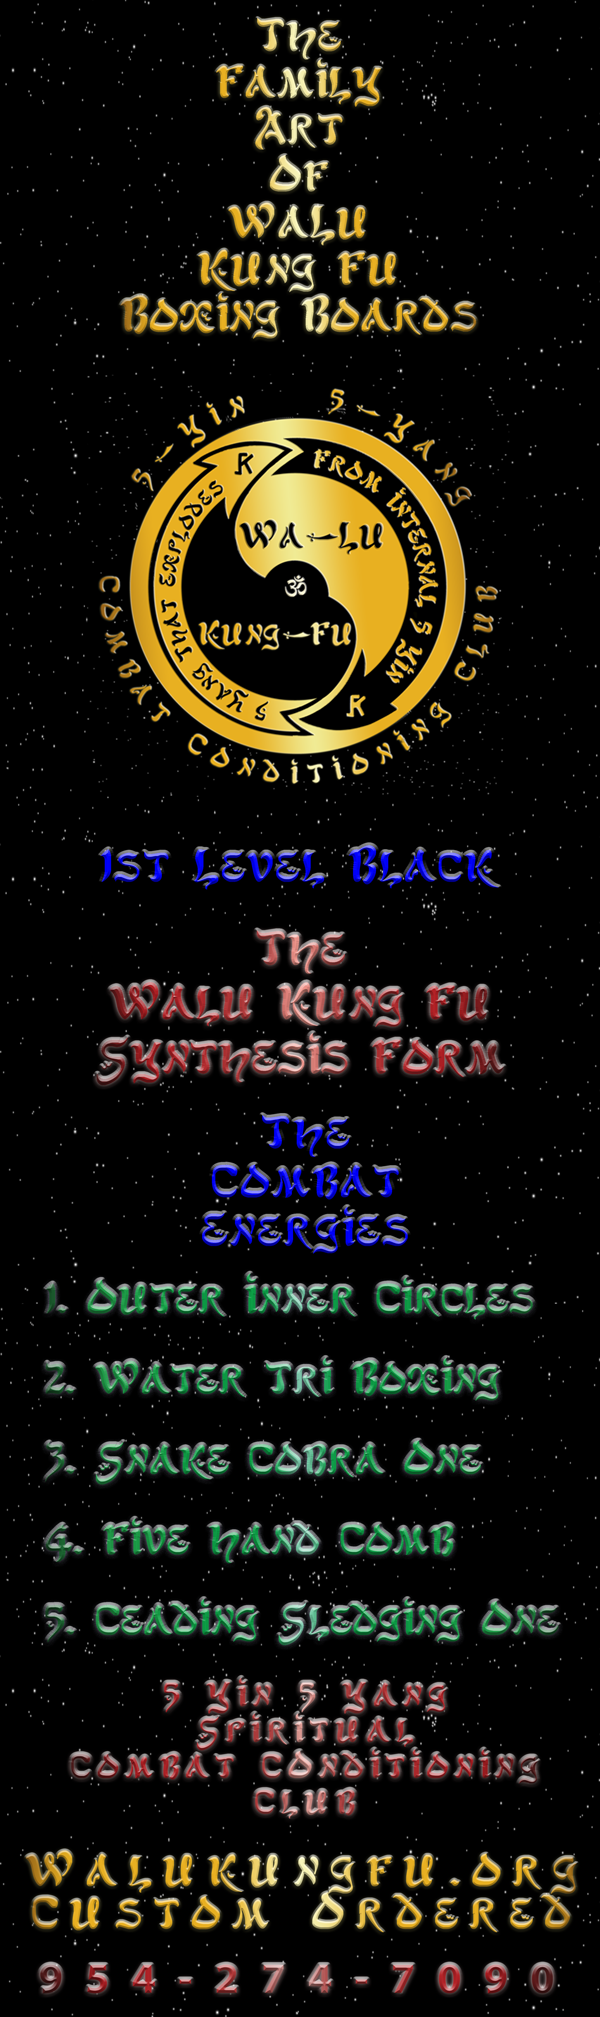 The Walu Kung Fu Boxing Boards First Level Black Apprentice Instructors Curriculum. Designed to Give the Student the Basics in Self Defense, Chi Kung, and Olympic Level Health and Fitness.